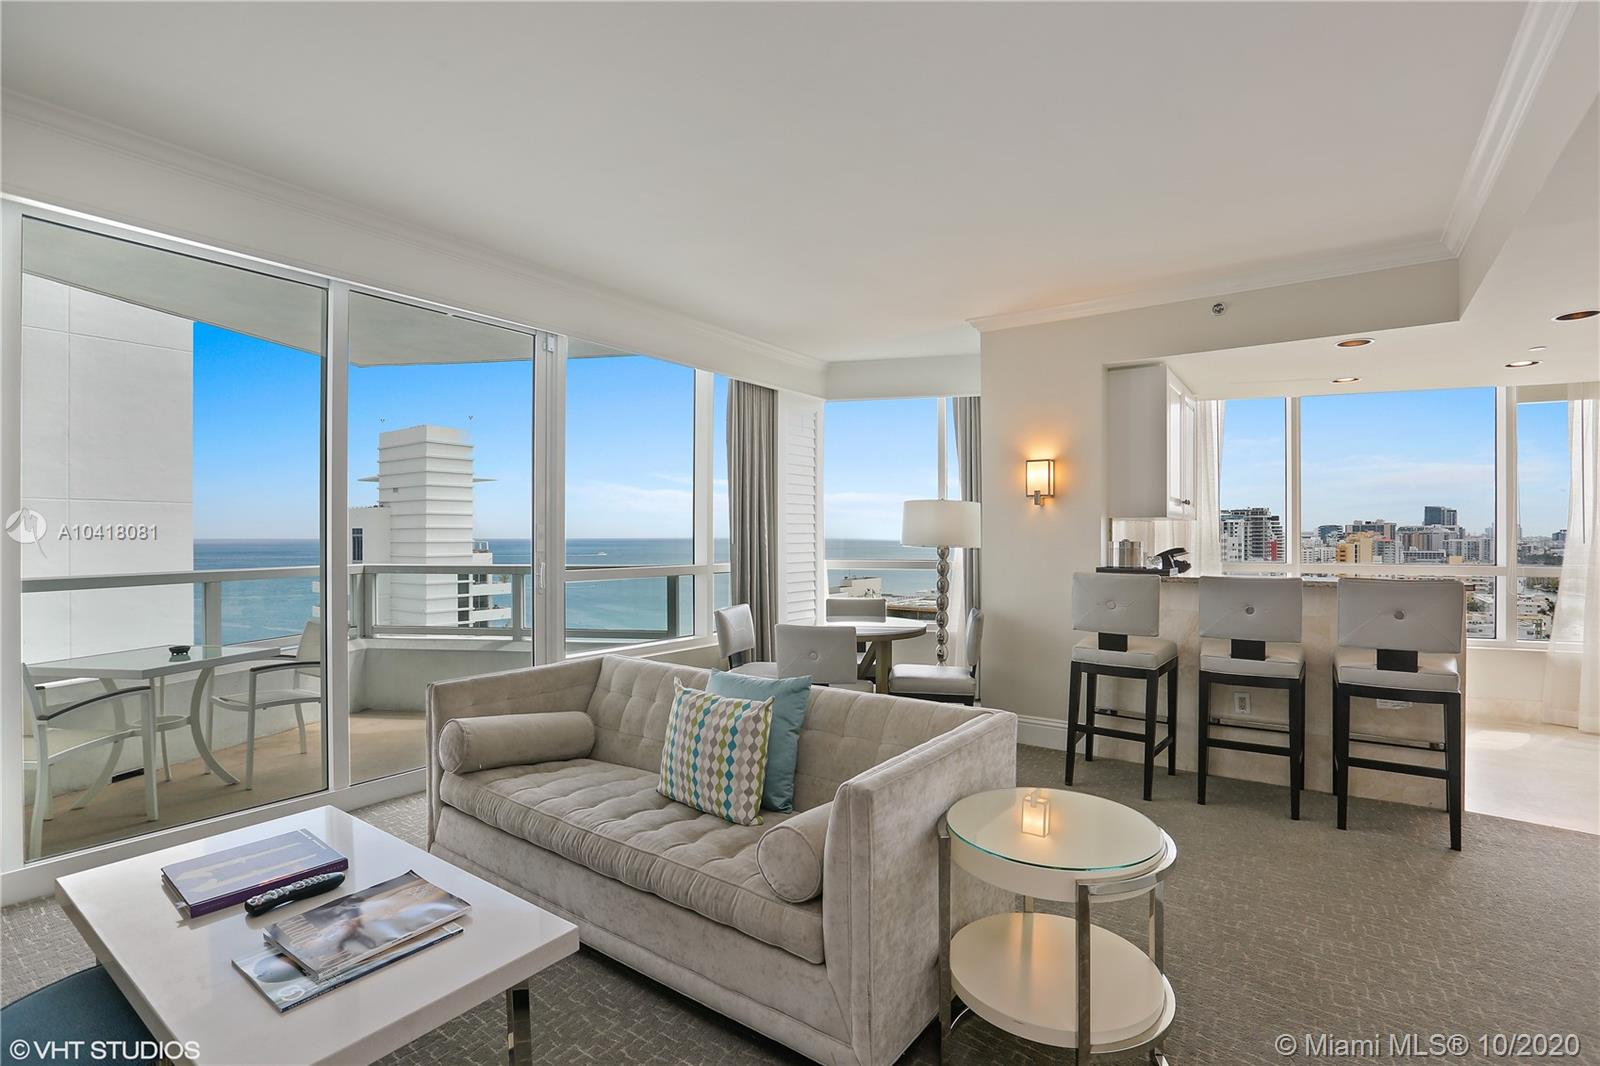 Fontainebleau Tresor #1604 - 4401 COLLINS AVE #1604, Miami Beach, FL 33140